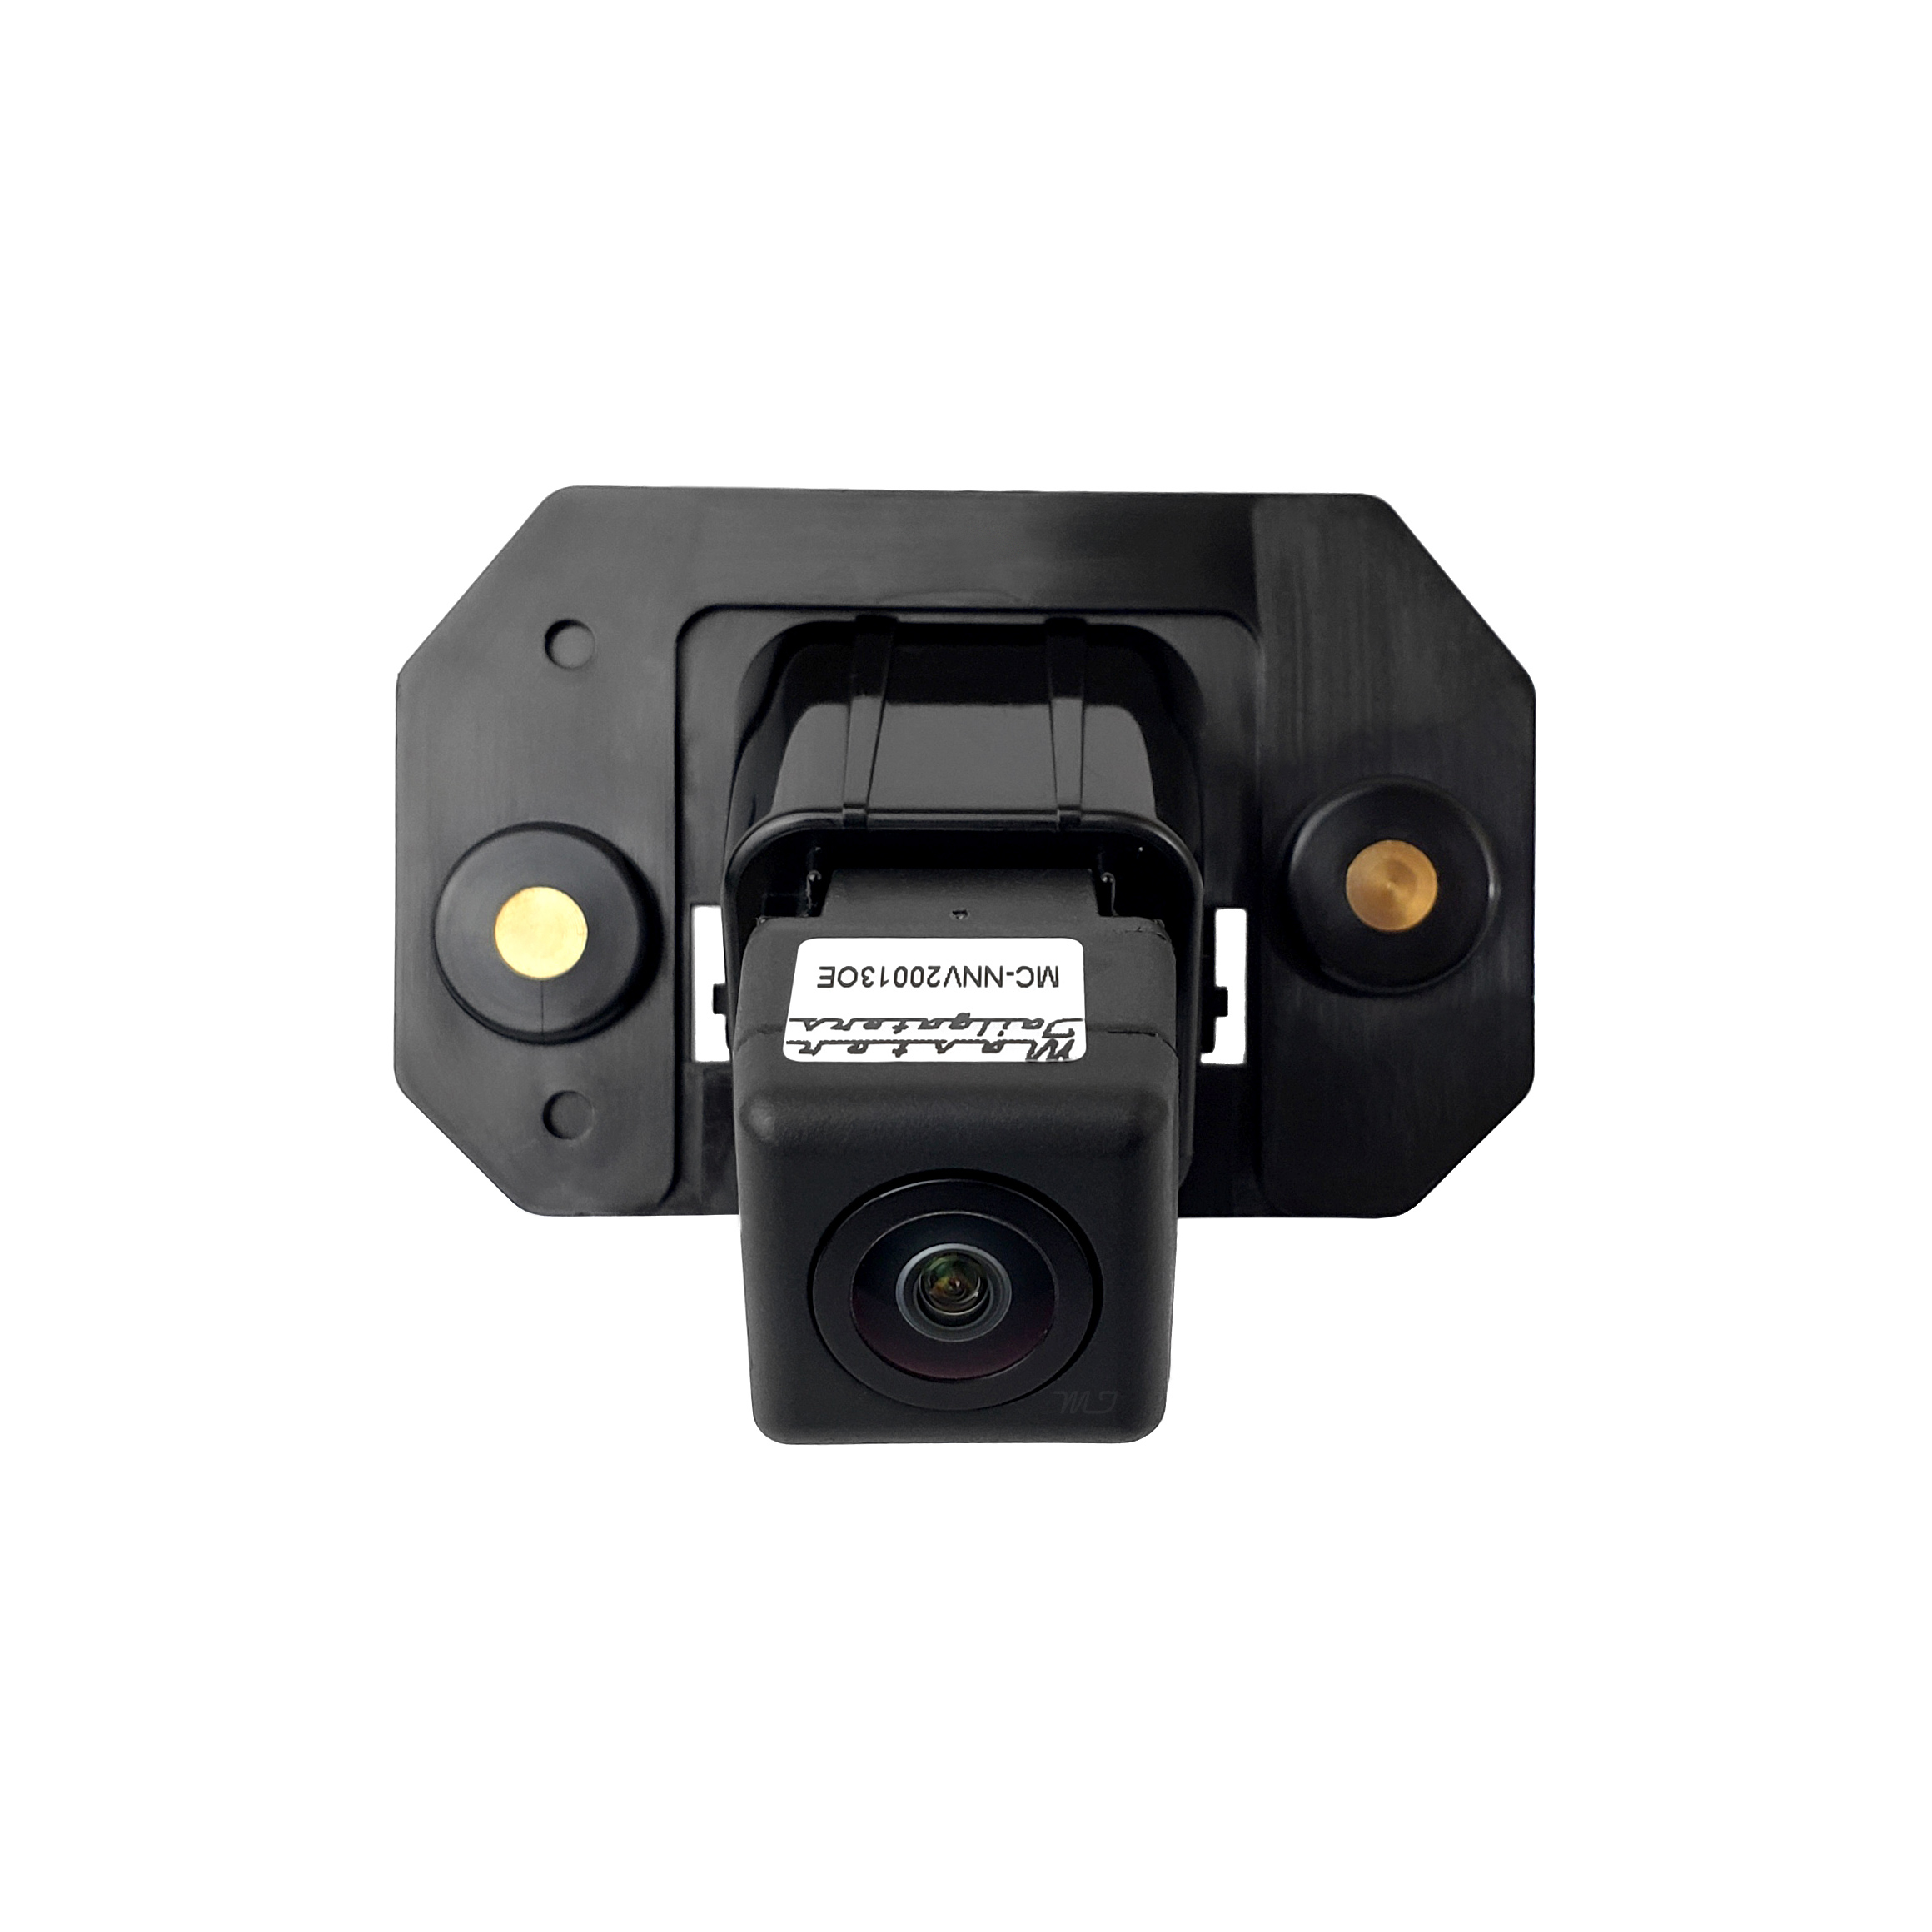 2013-2017 OE Part # 28442-JX01A Master Tailgaters Replacement for Nissan NV200 Backup Camera